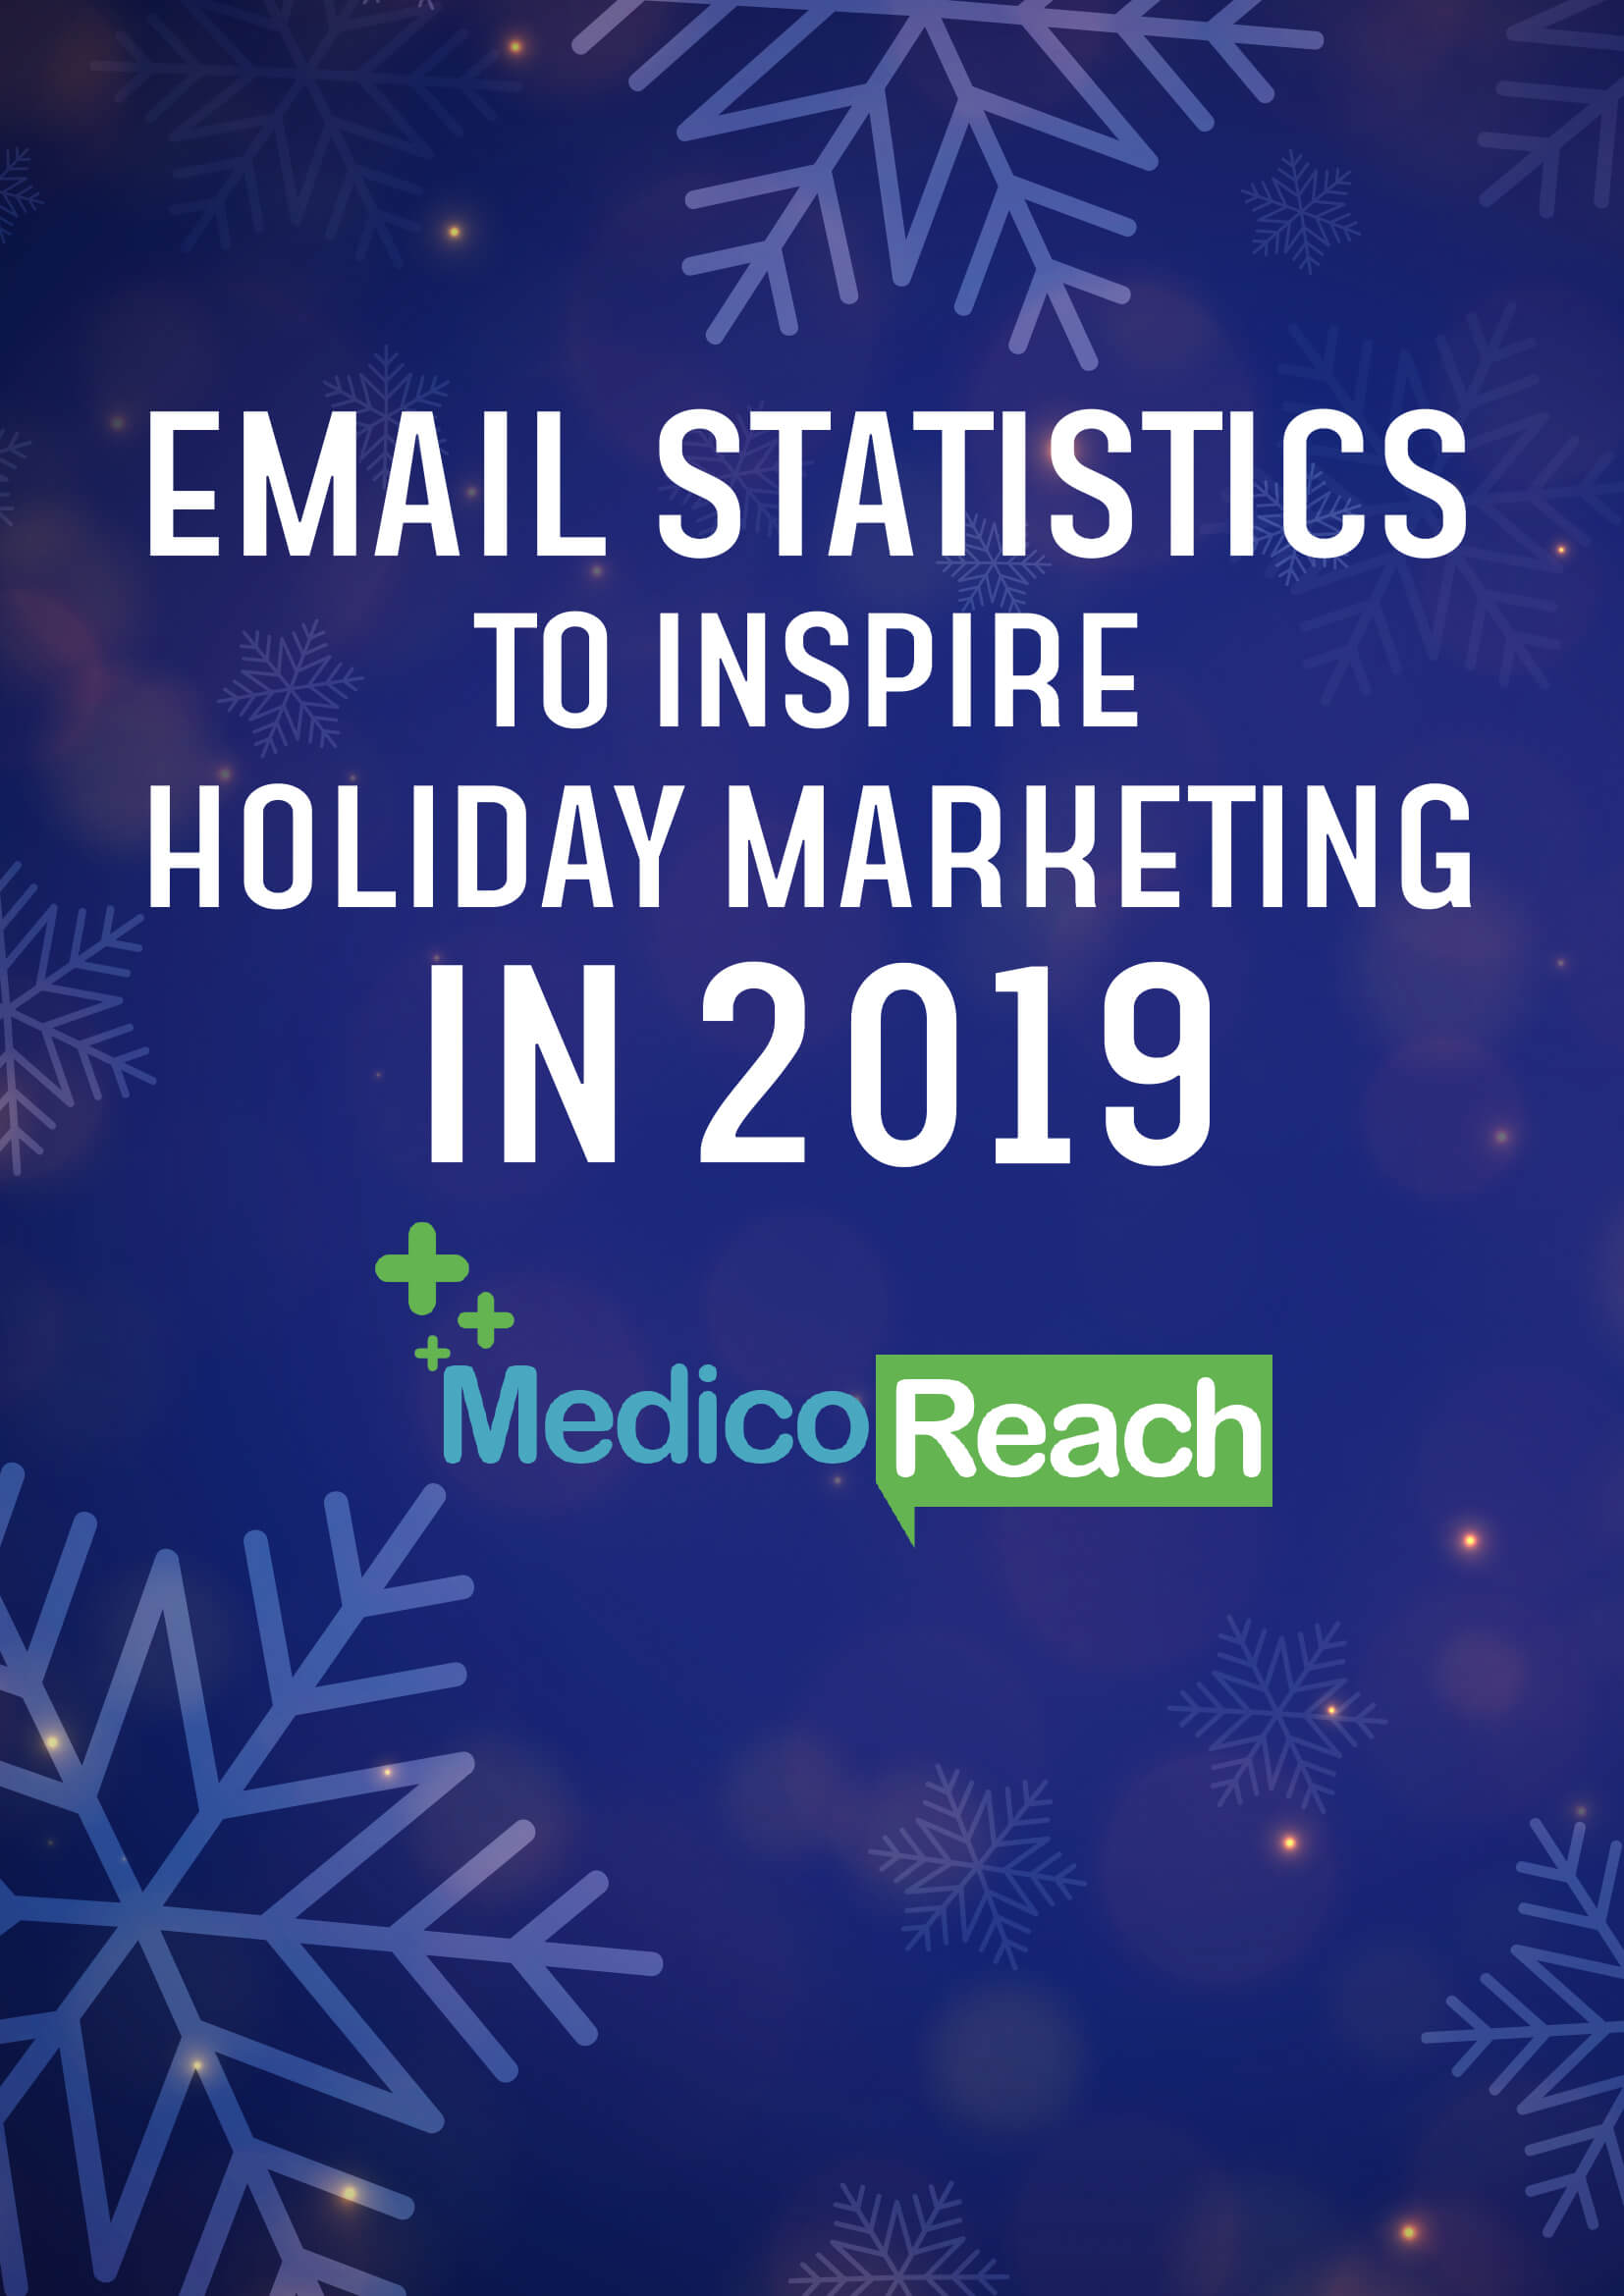 Email Statistics to Inspire Holiday Marketing in 2019